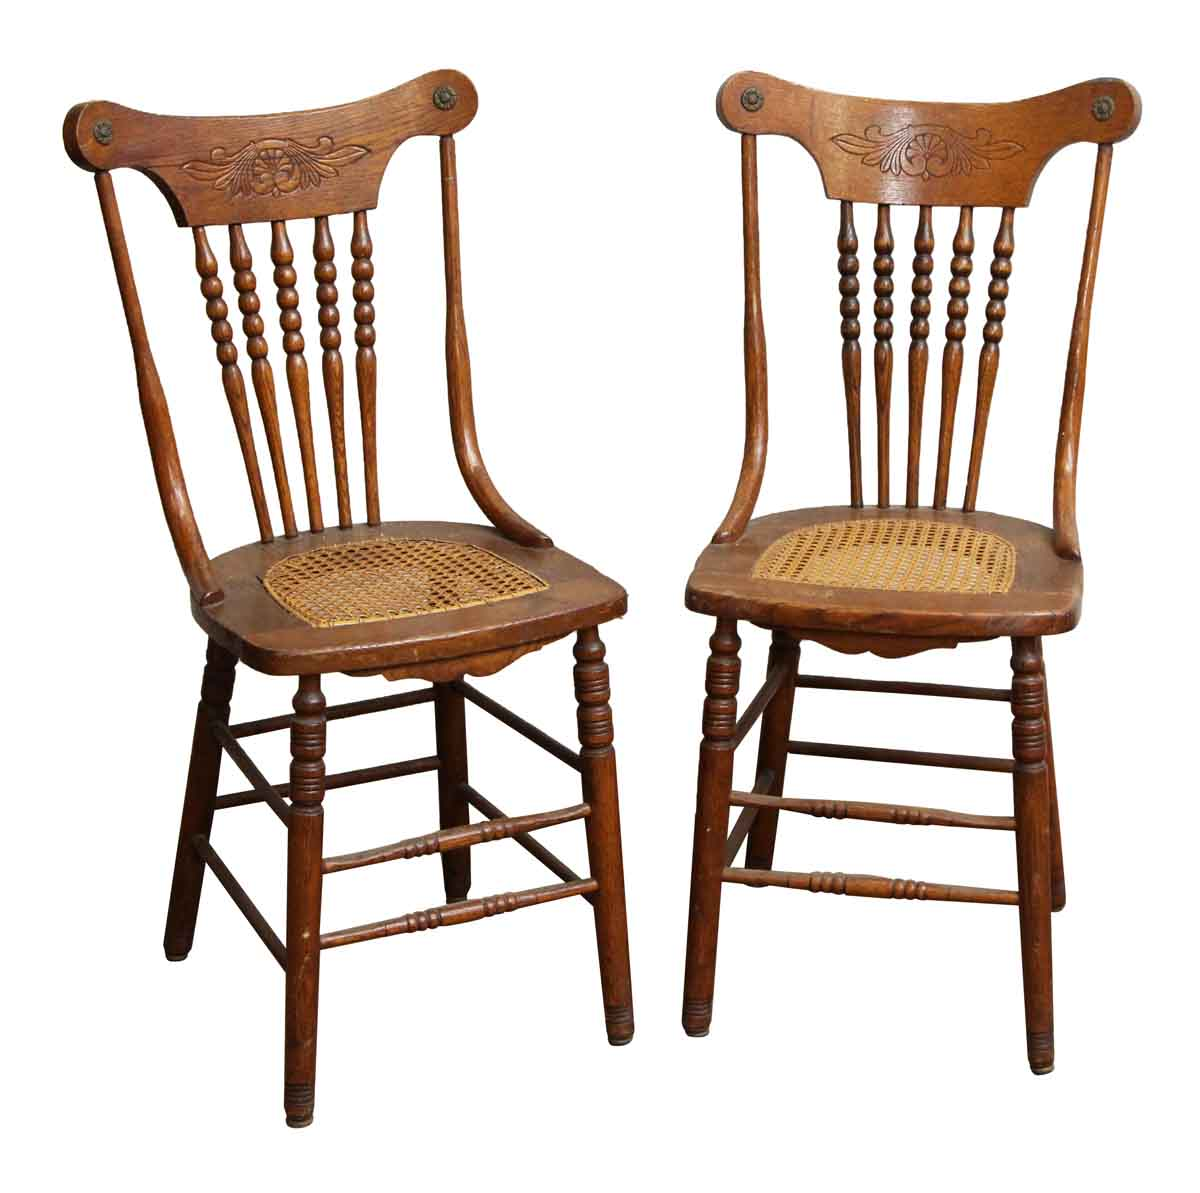 Antique Wooden Kitchen Chairs: Pair Of Carved Wood Chairs With Wicker Seat